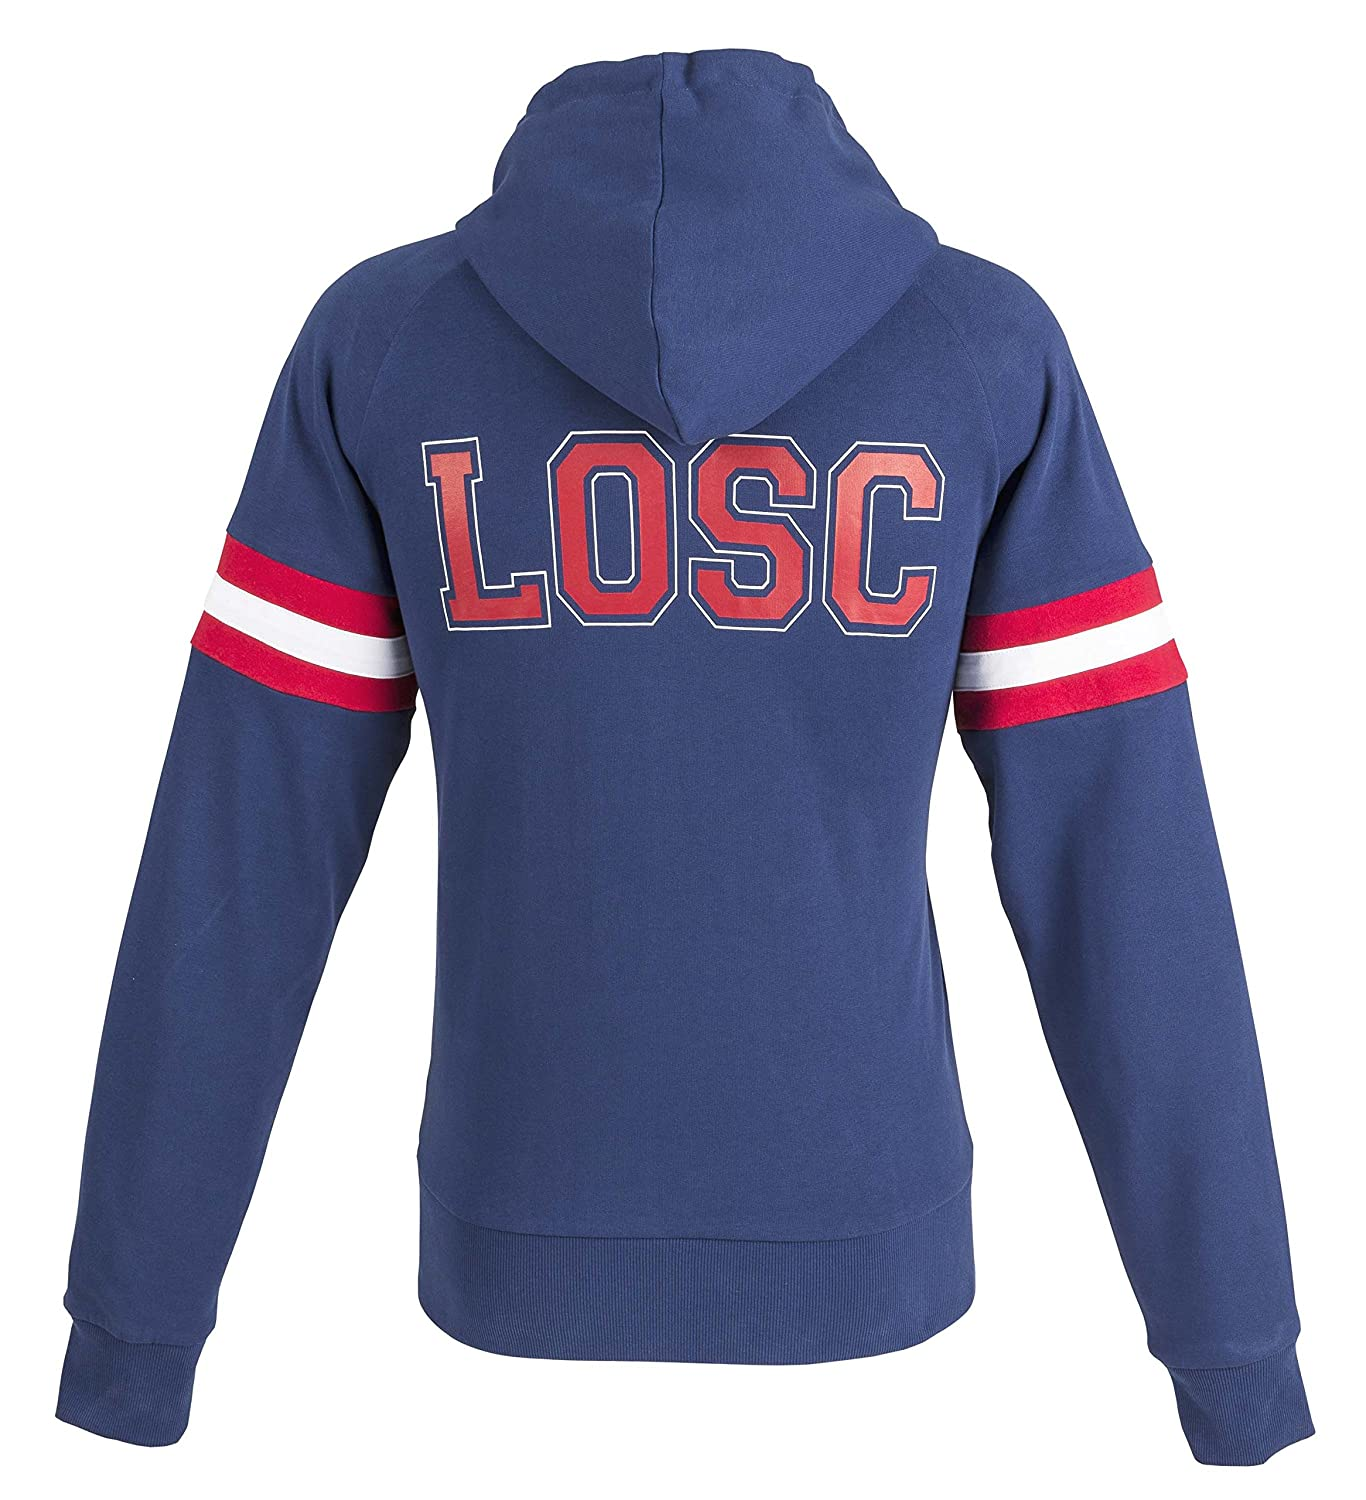 Sweat zip capuche LOSC Collection officielle LILLE OSC Taille adulte homme